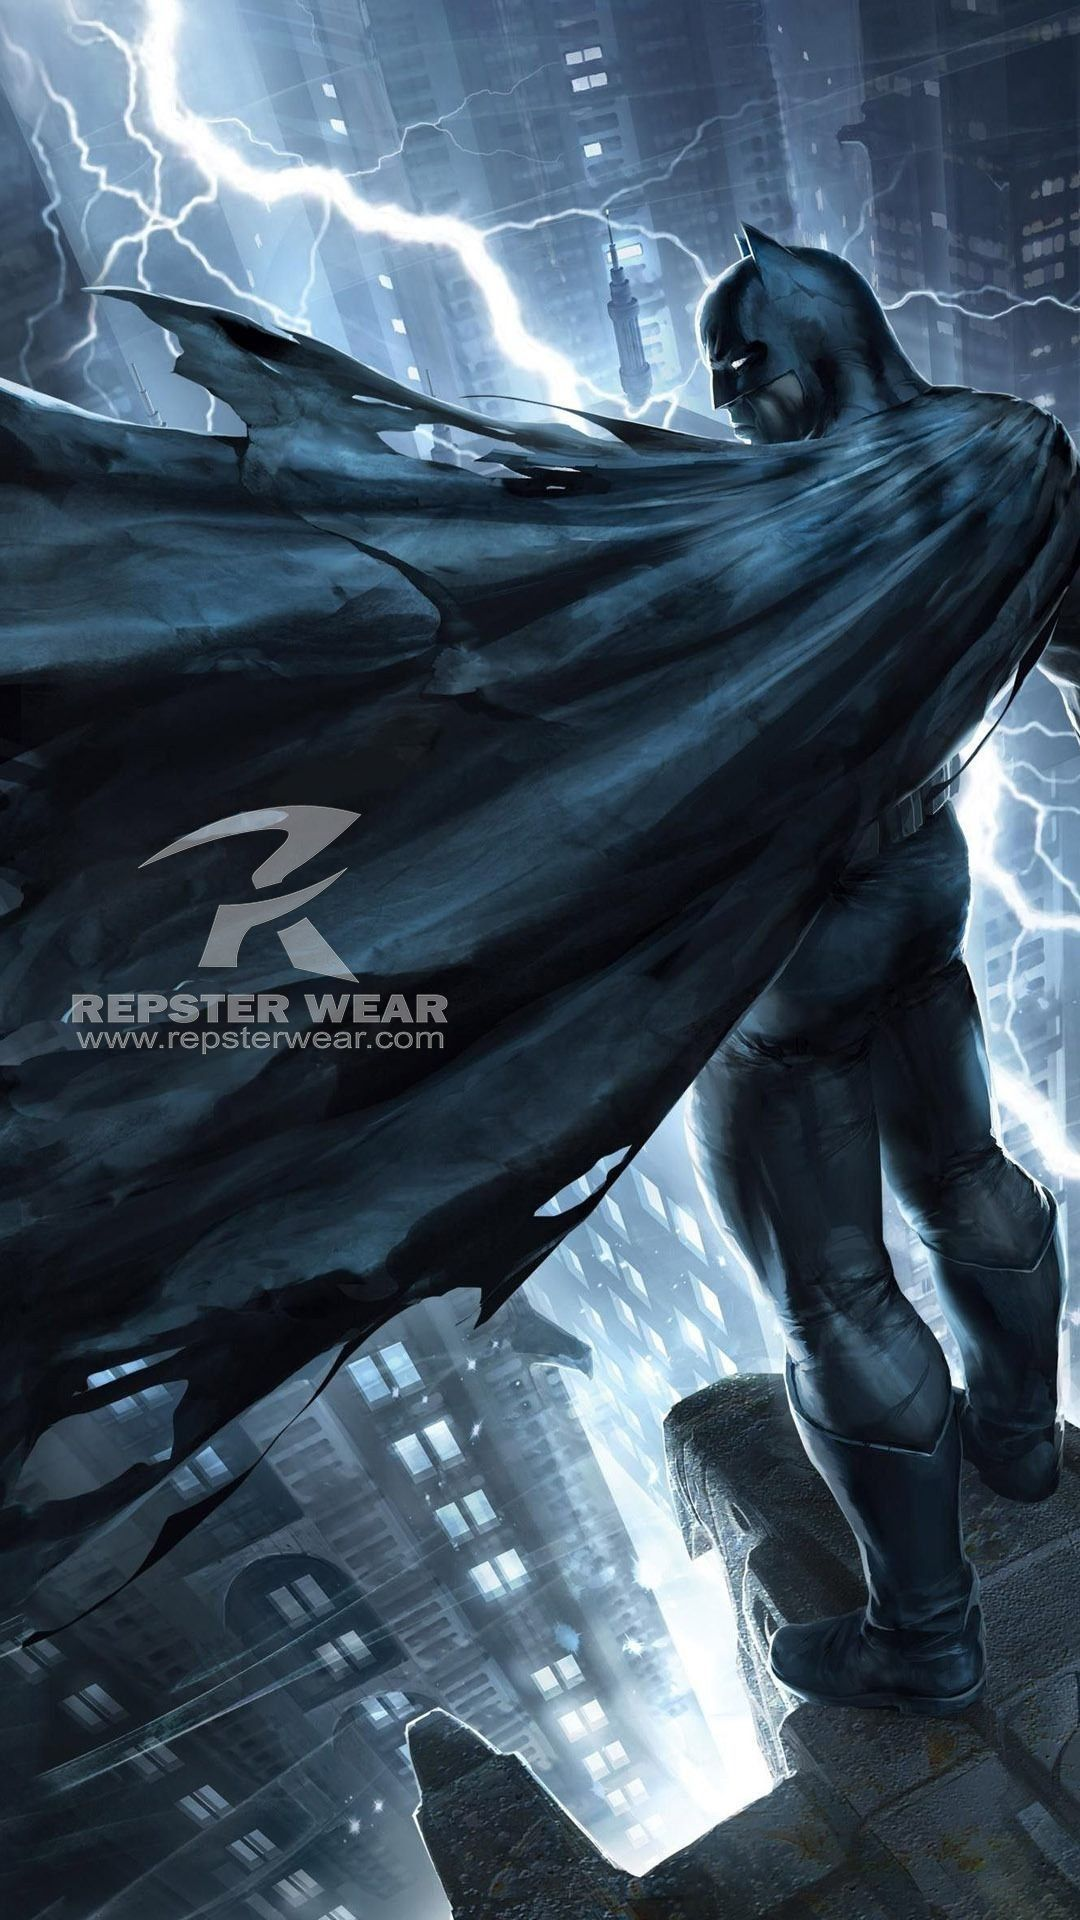 Batman Motorcycle Racing Leather Suit Repsters Motorcycle Suit Batman Comic Wallpaper Batman Wallpaper Iphone Batman Pictures